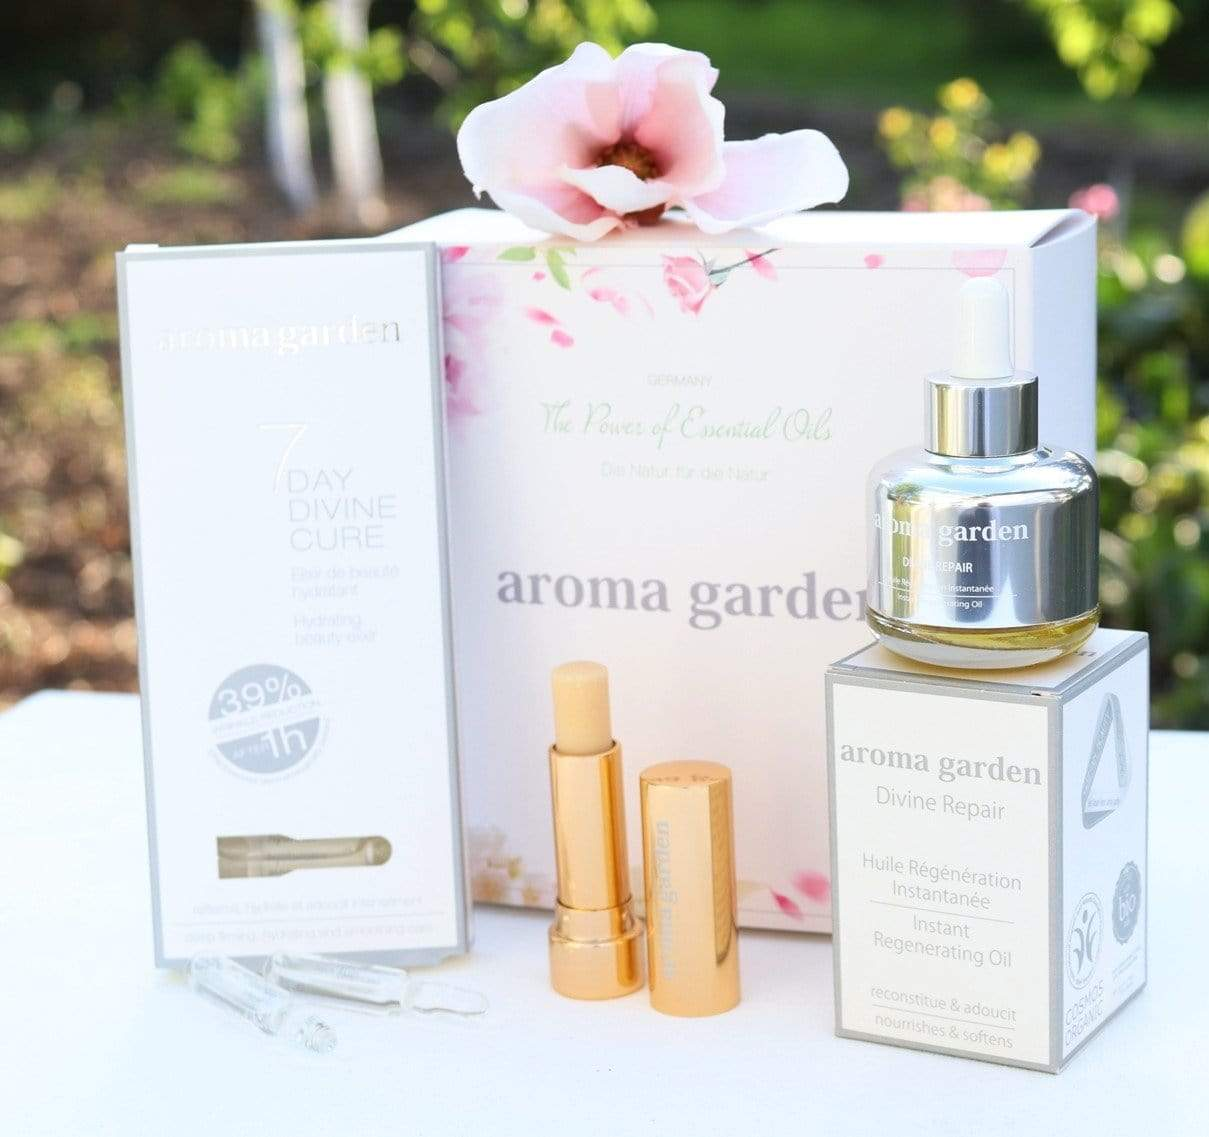 aroma garden Geheim Special Recovery Program sustainable fashion ethical fashion